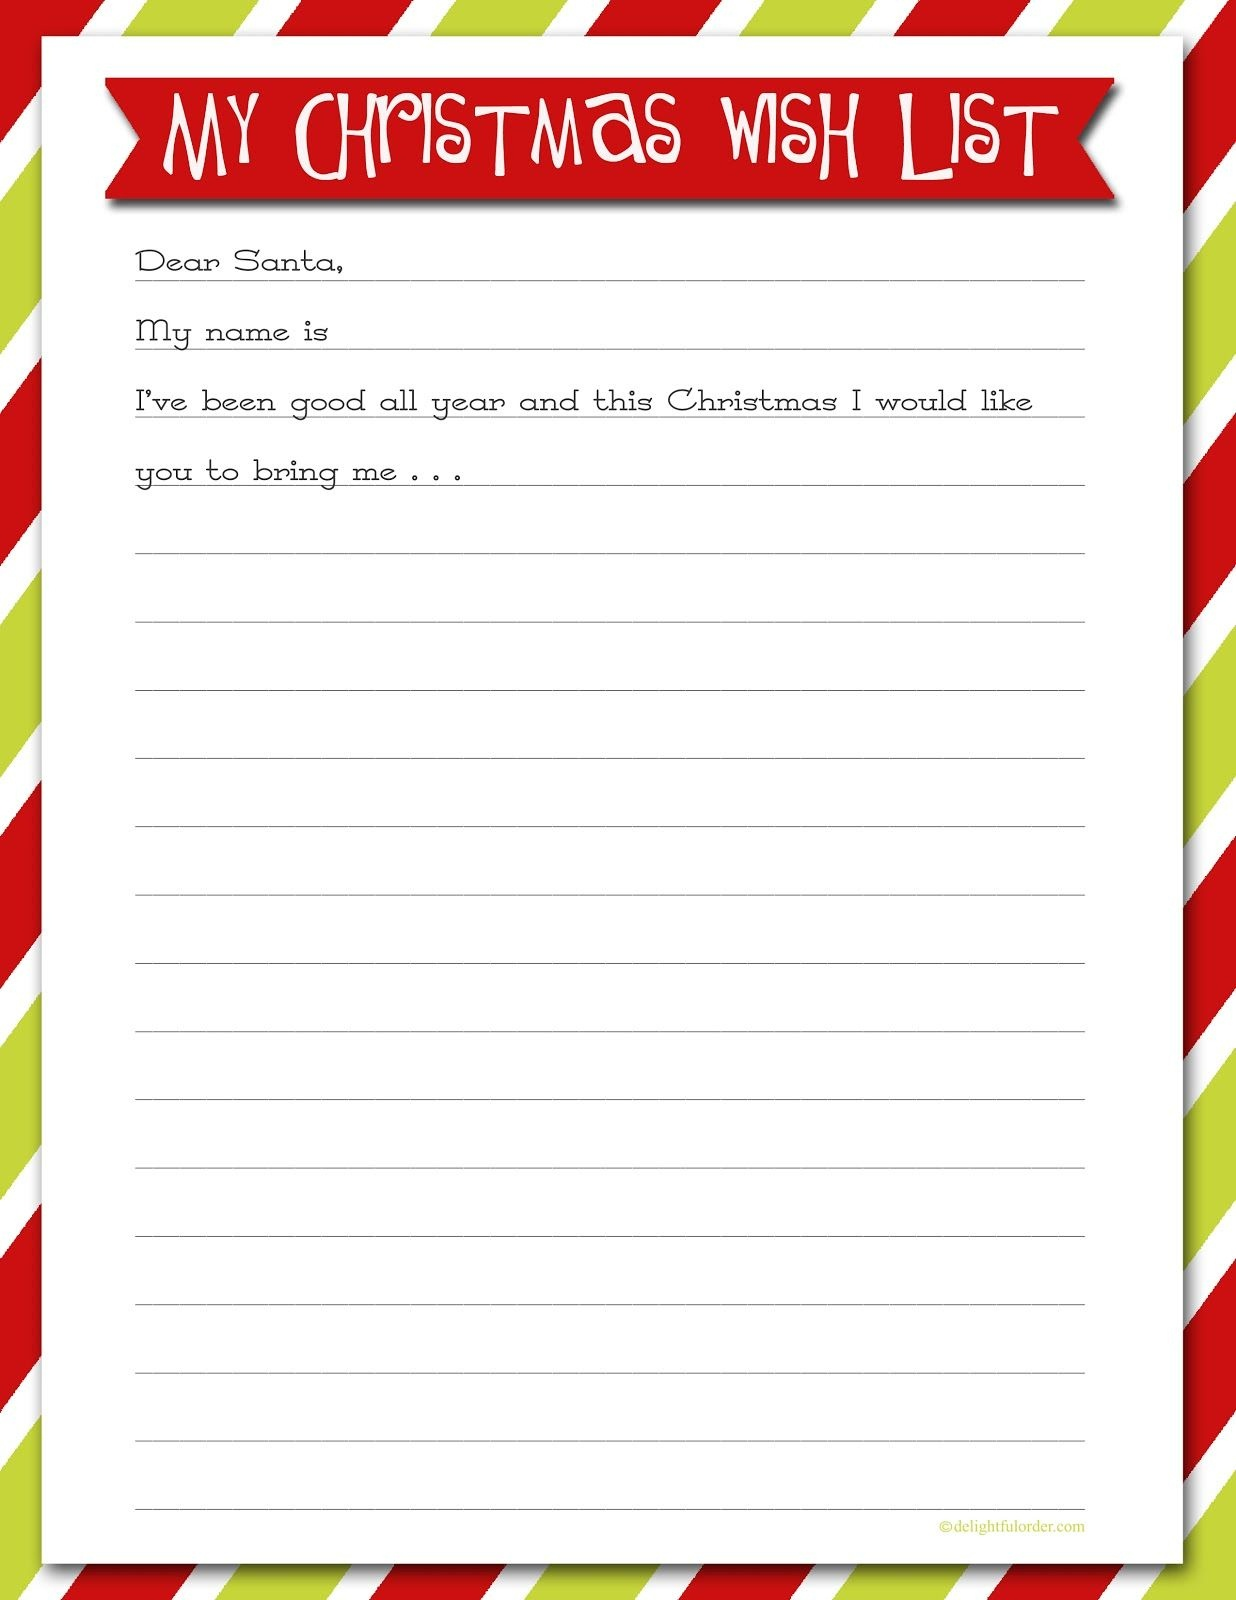 Delightful Order: Christmas Wish List - Free Printable | Delightful - Free Printable Christmas Wish List